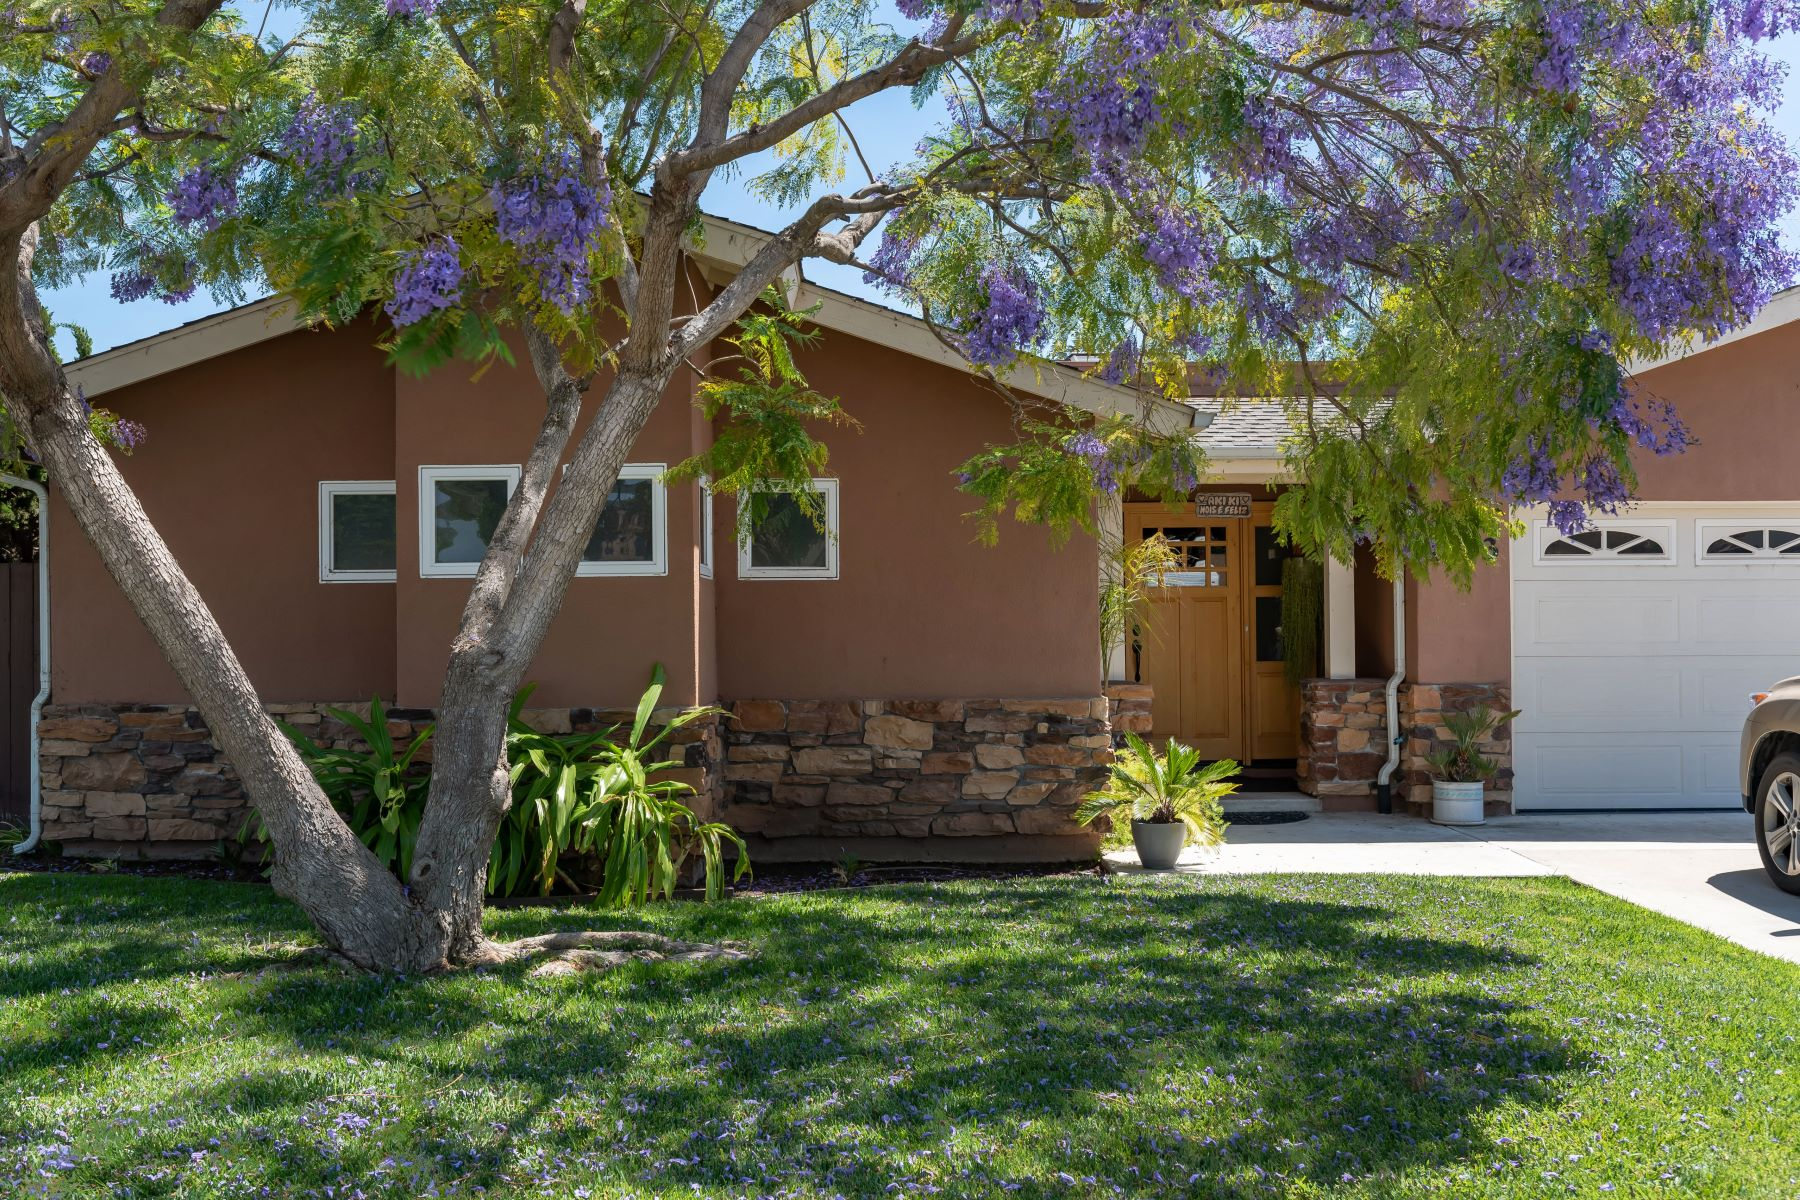 Single Family Homes for Sale at 1593 Rock Springs Road San Marcos, California 92069 United States